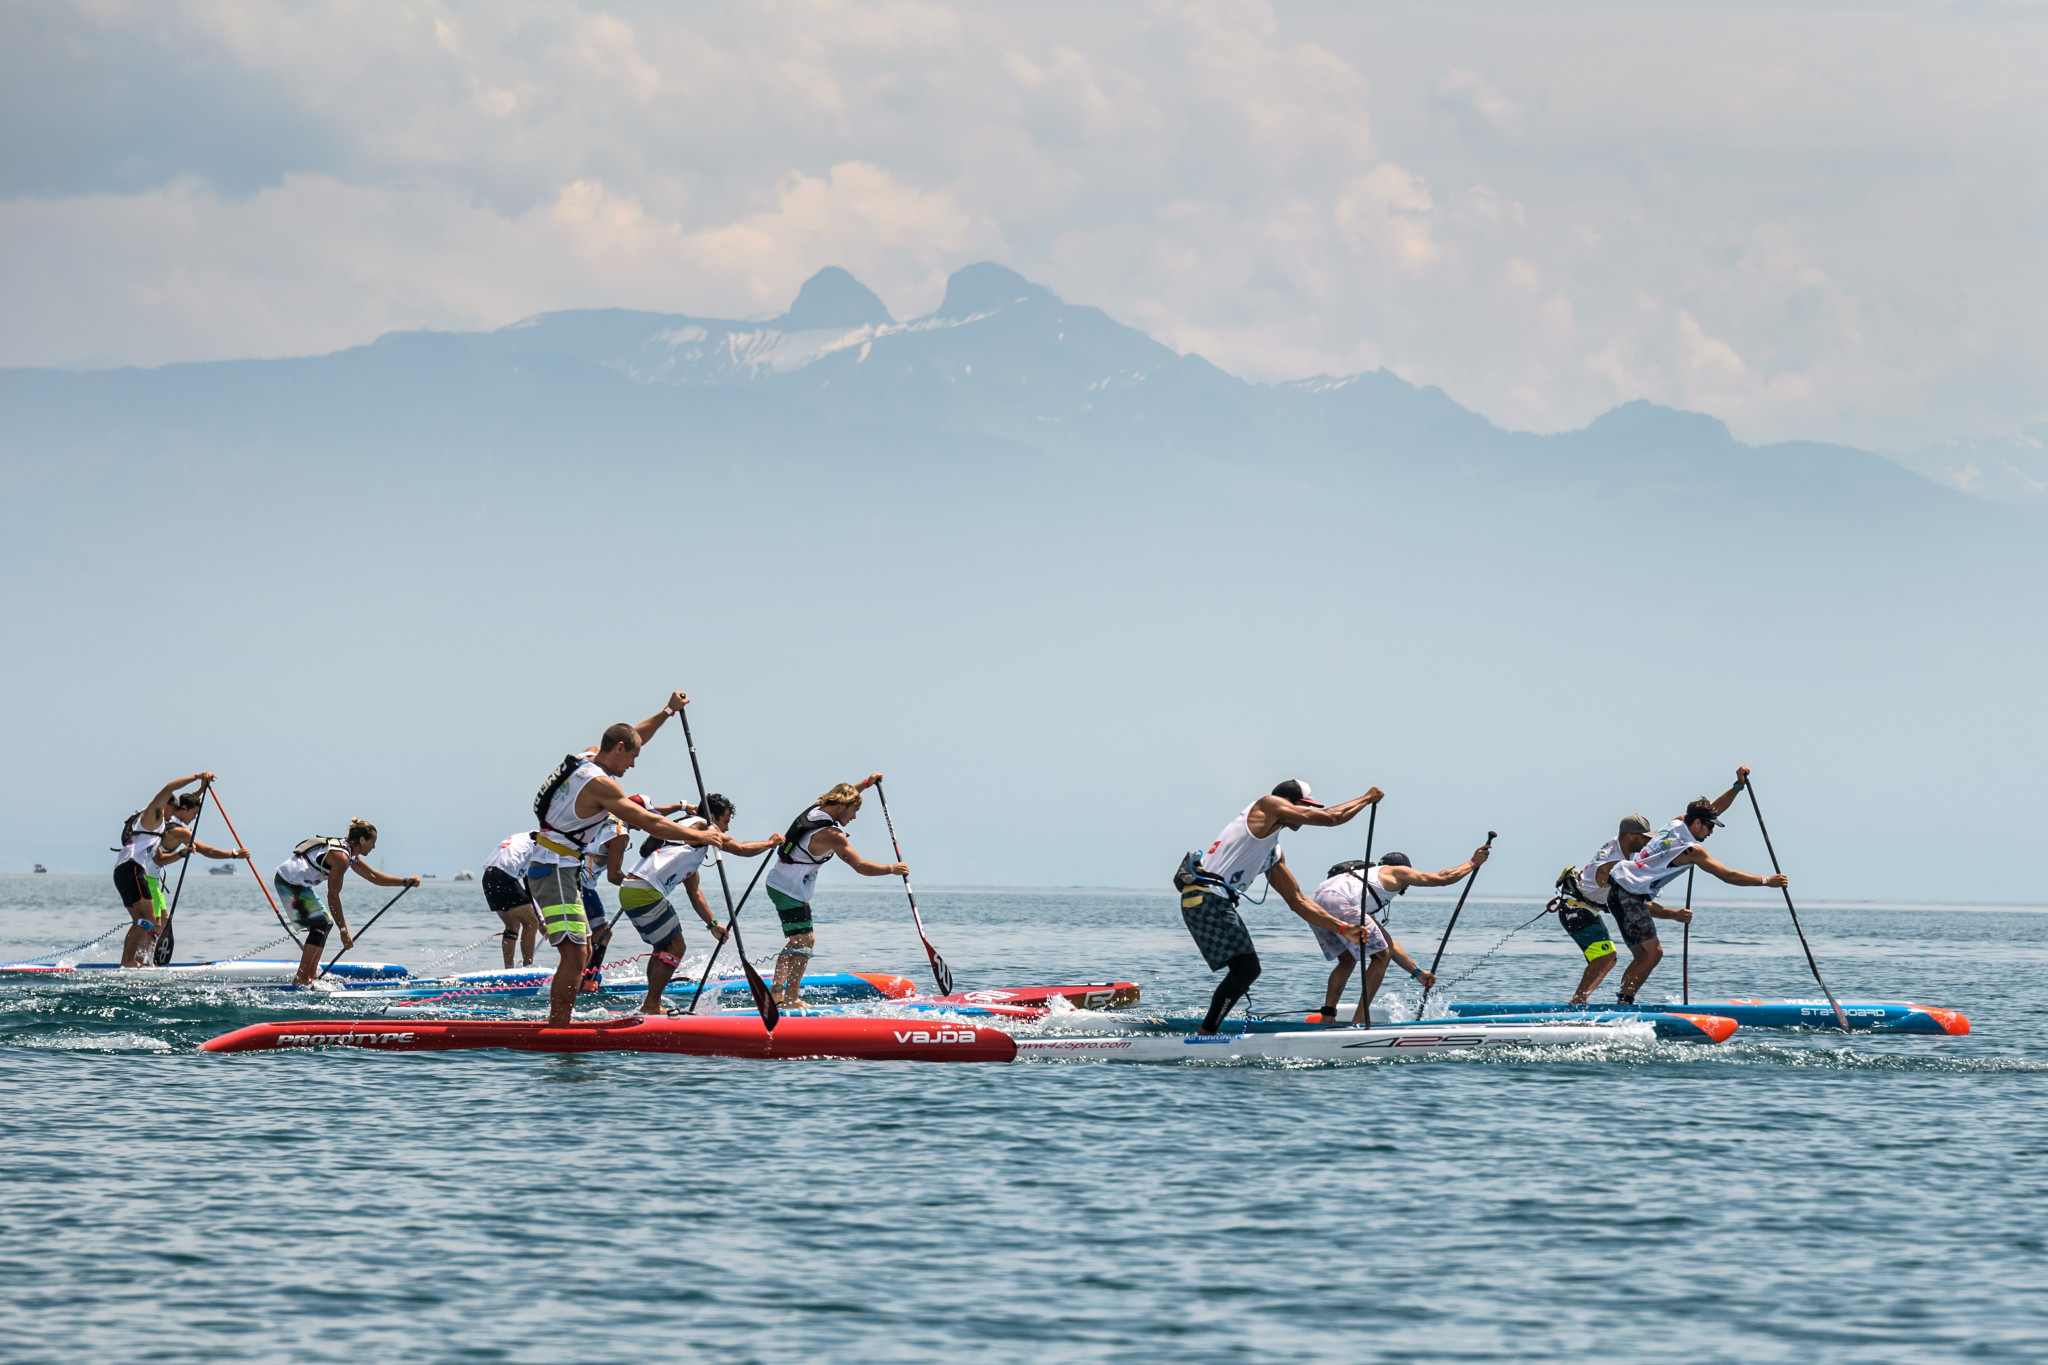 ISA refer ICF to Court of Arbitration for Sport as stand-up paddle governance row continues